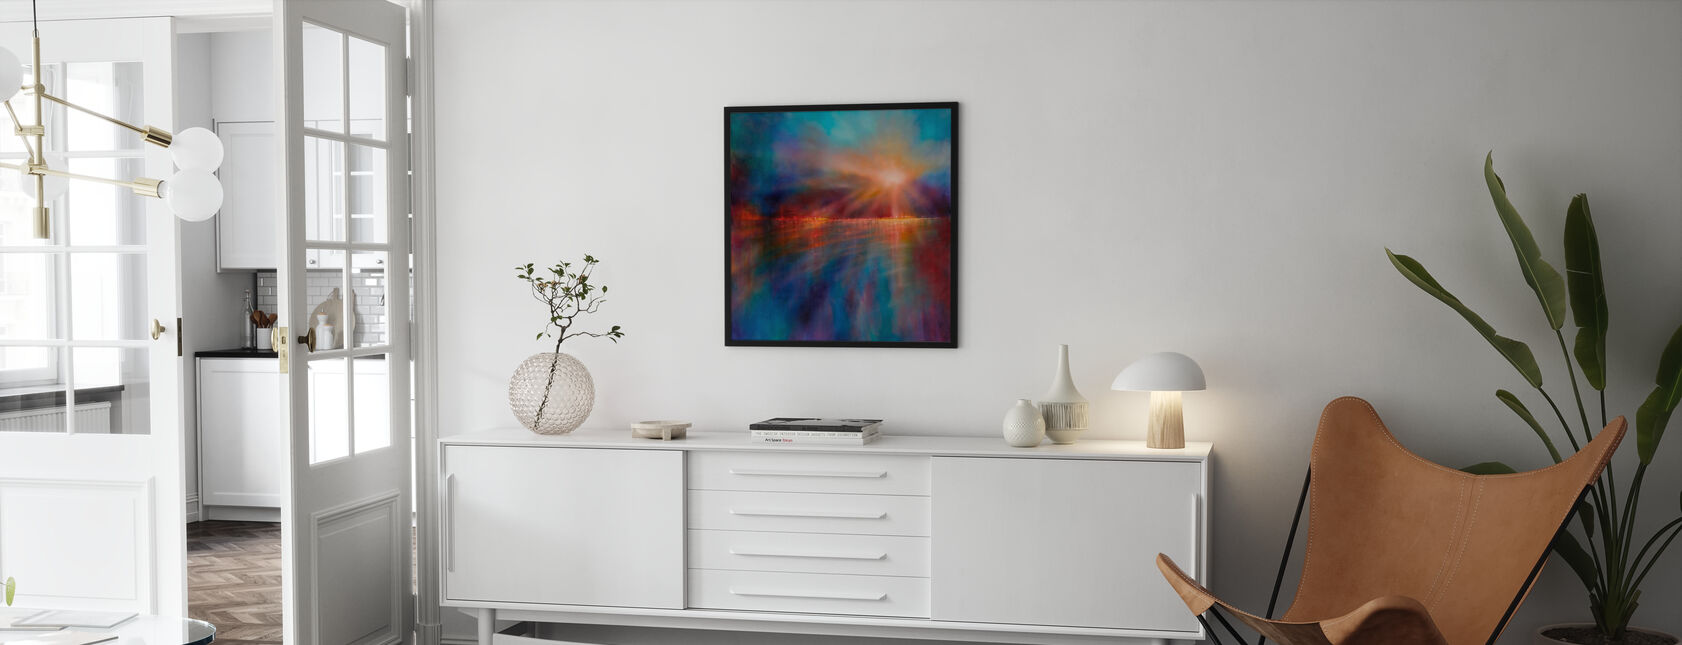 Another Morning - Framed print - Living Room